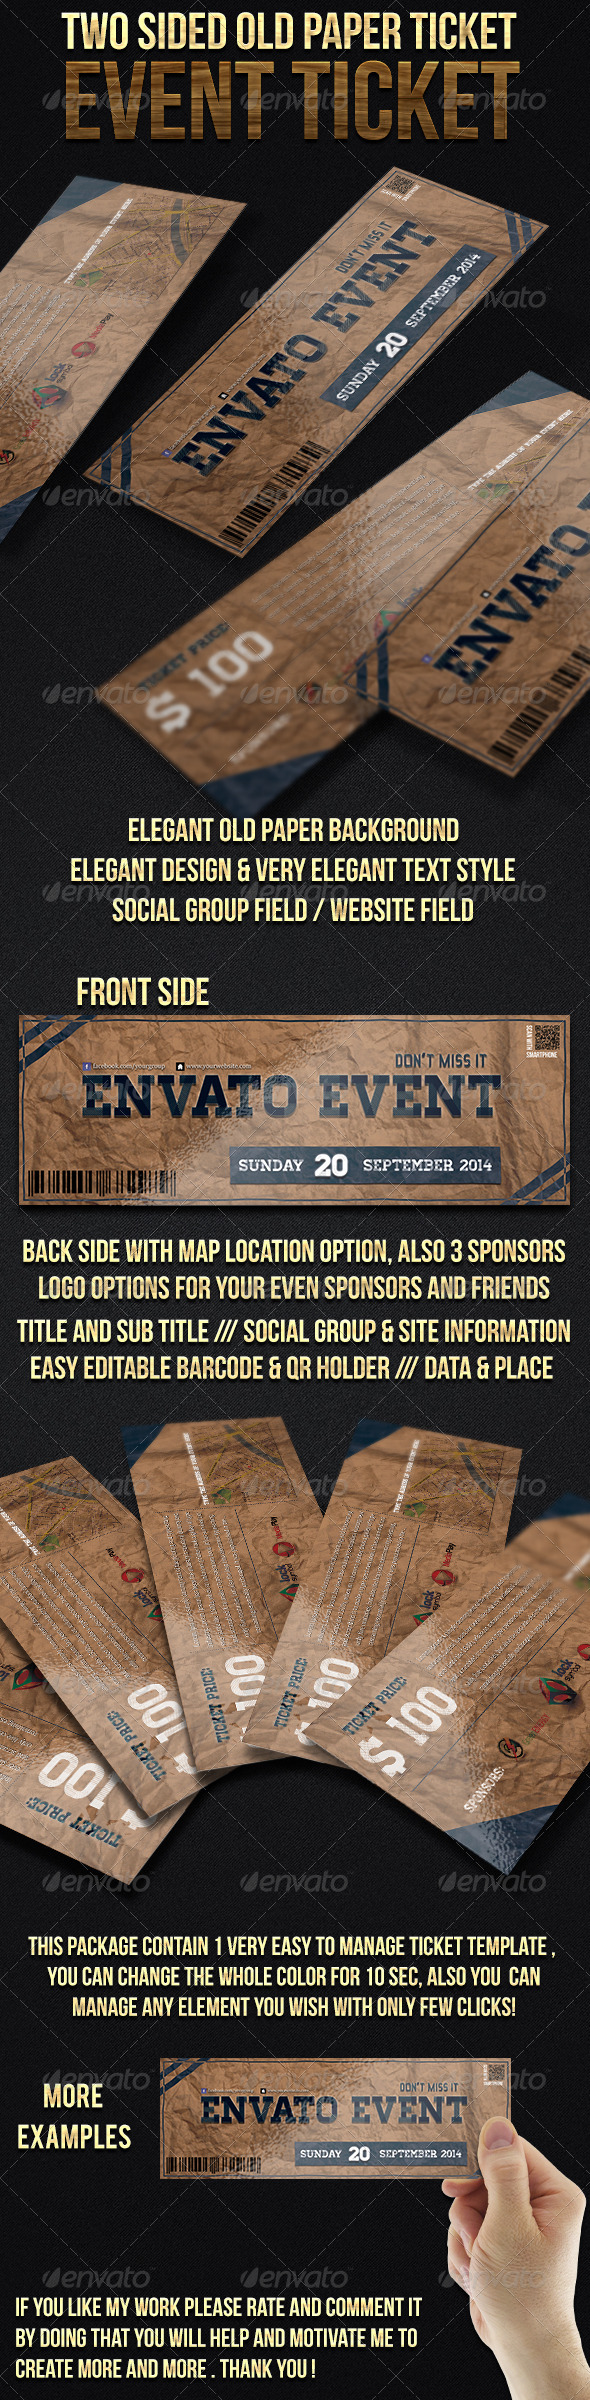 Two Sided Old Paper Event Ticket - Cards & Invites Print Templates